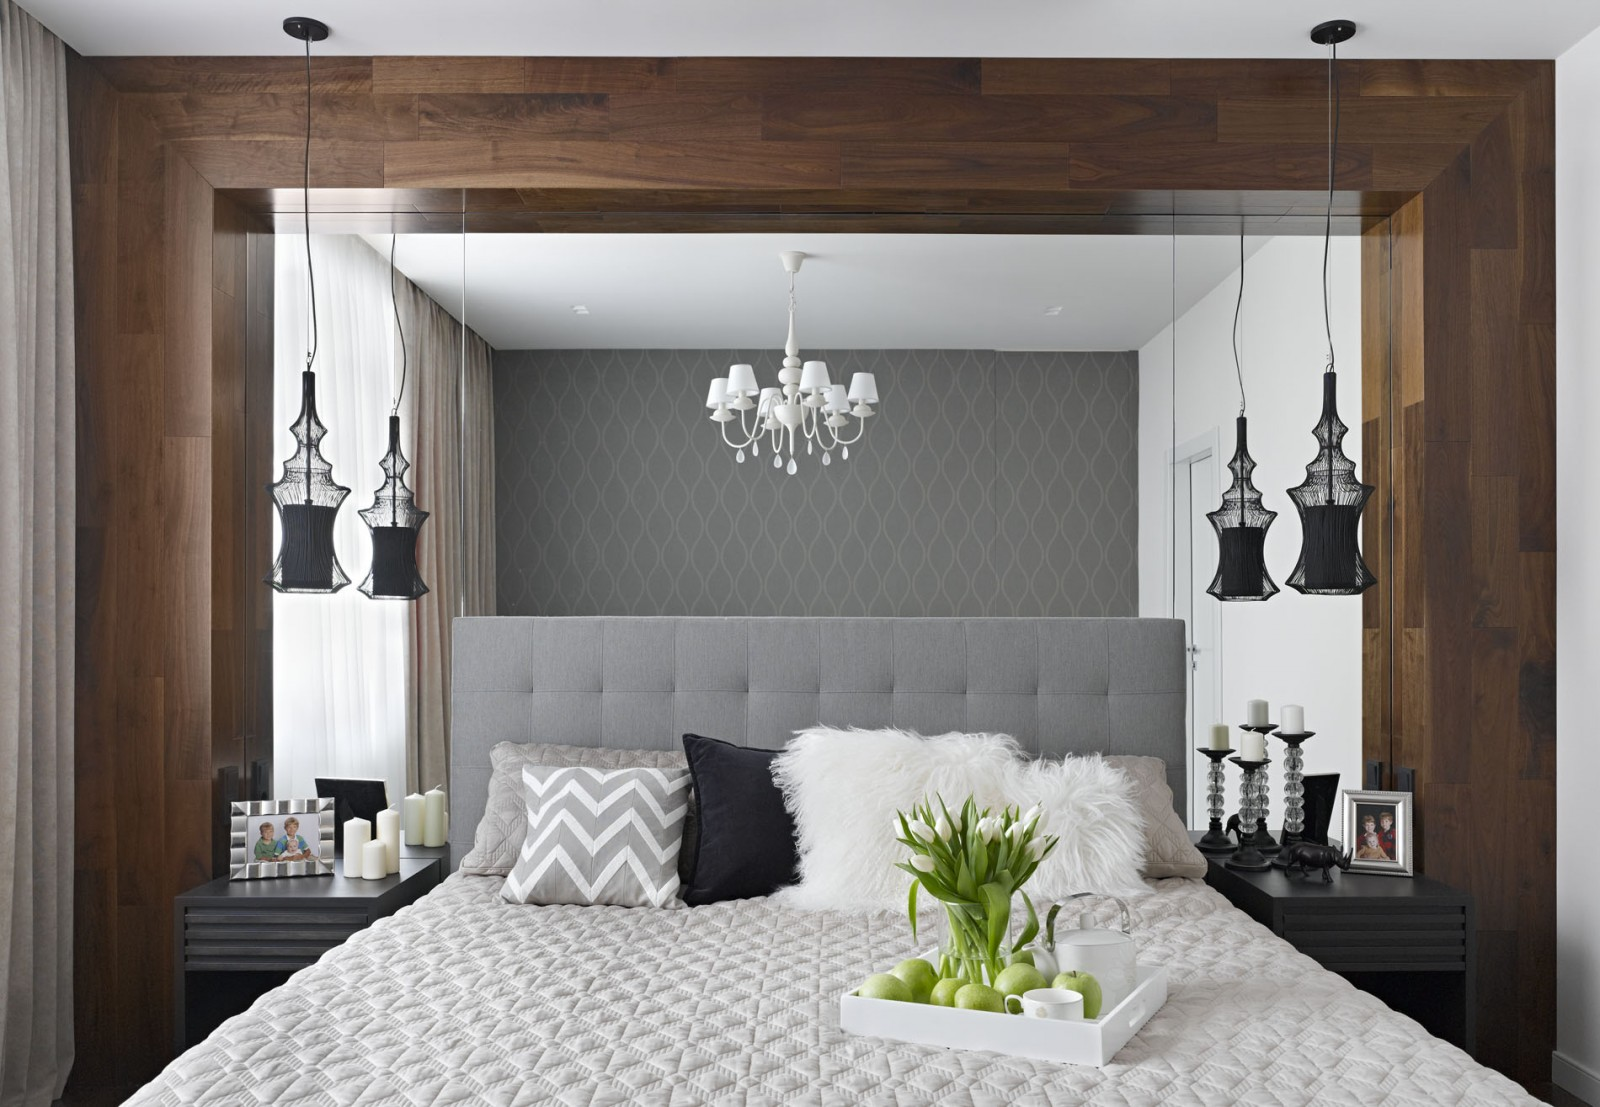 20 small bedroom ideas that will leave you speechless for Bedroom room decor ideas